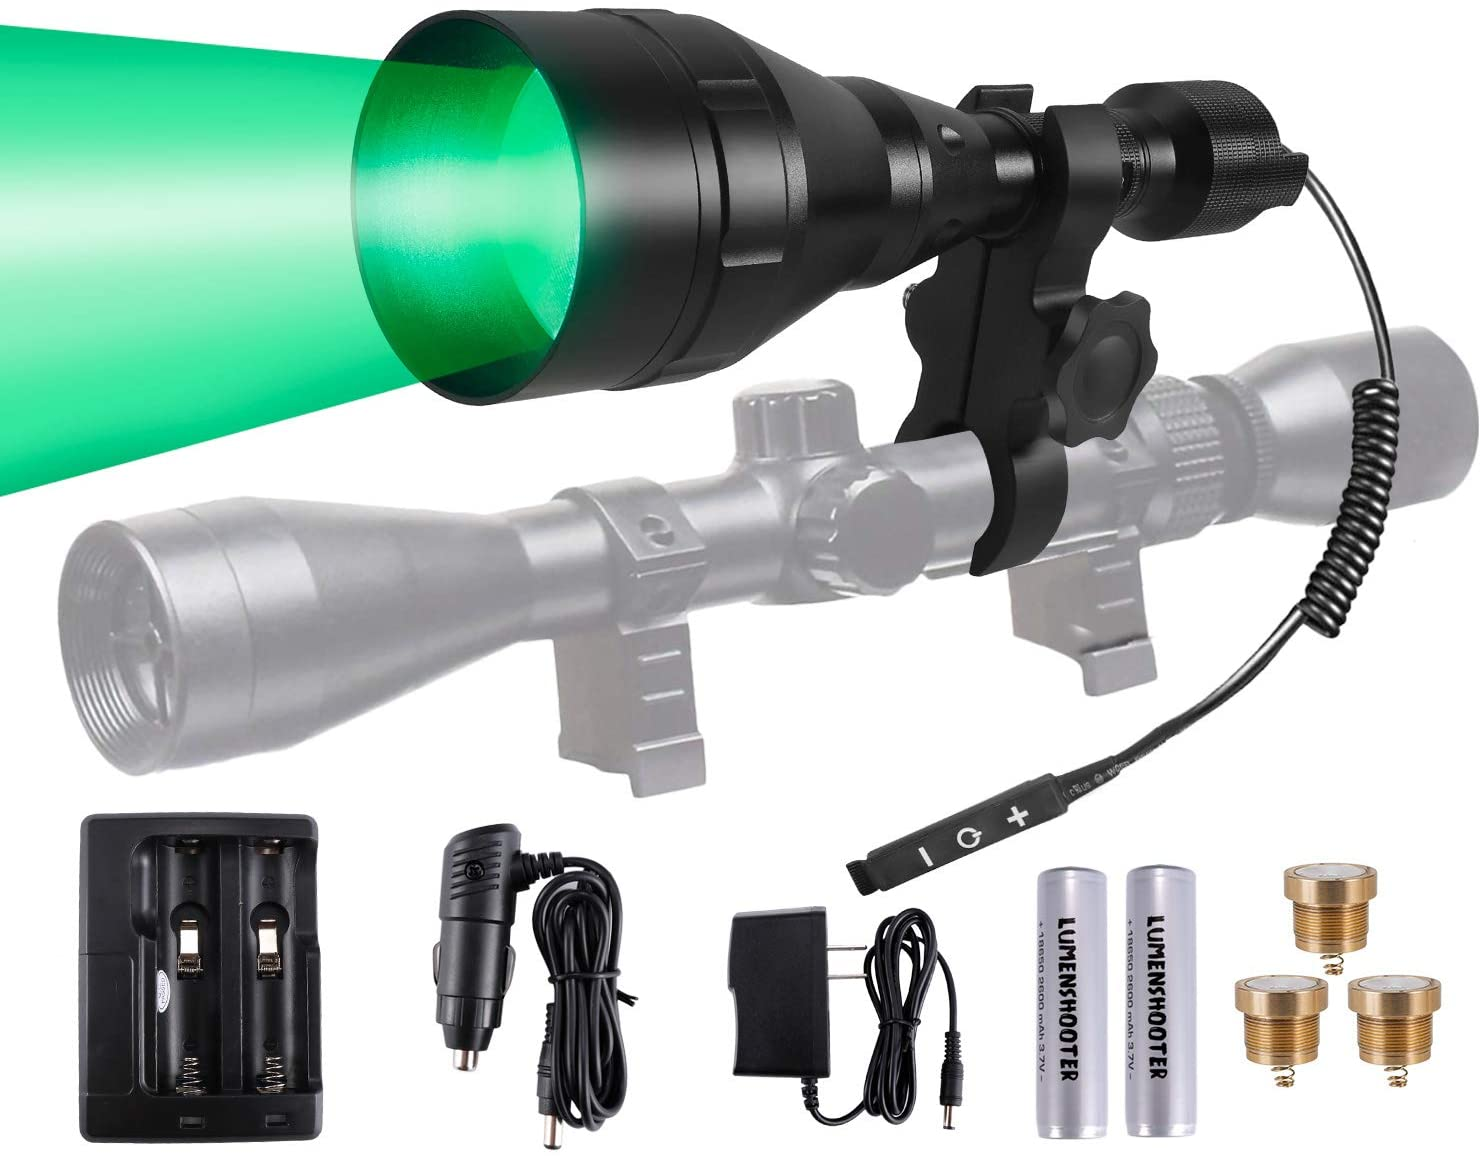 LUMENSHOOTER A9P Long Range Dimmable Hunting Light Kit,Green Red White Infrared 850nm IR Interchangeable LED Modules,Predator Night Torch Zoomable Flashlight for Coon Coyote Hog Fox Varmint